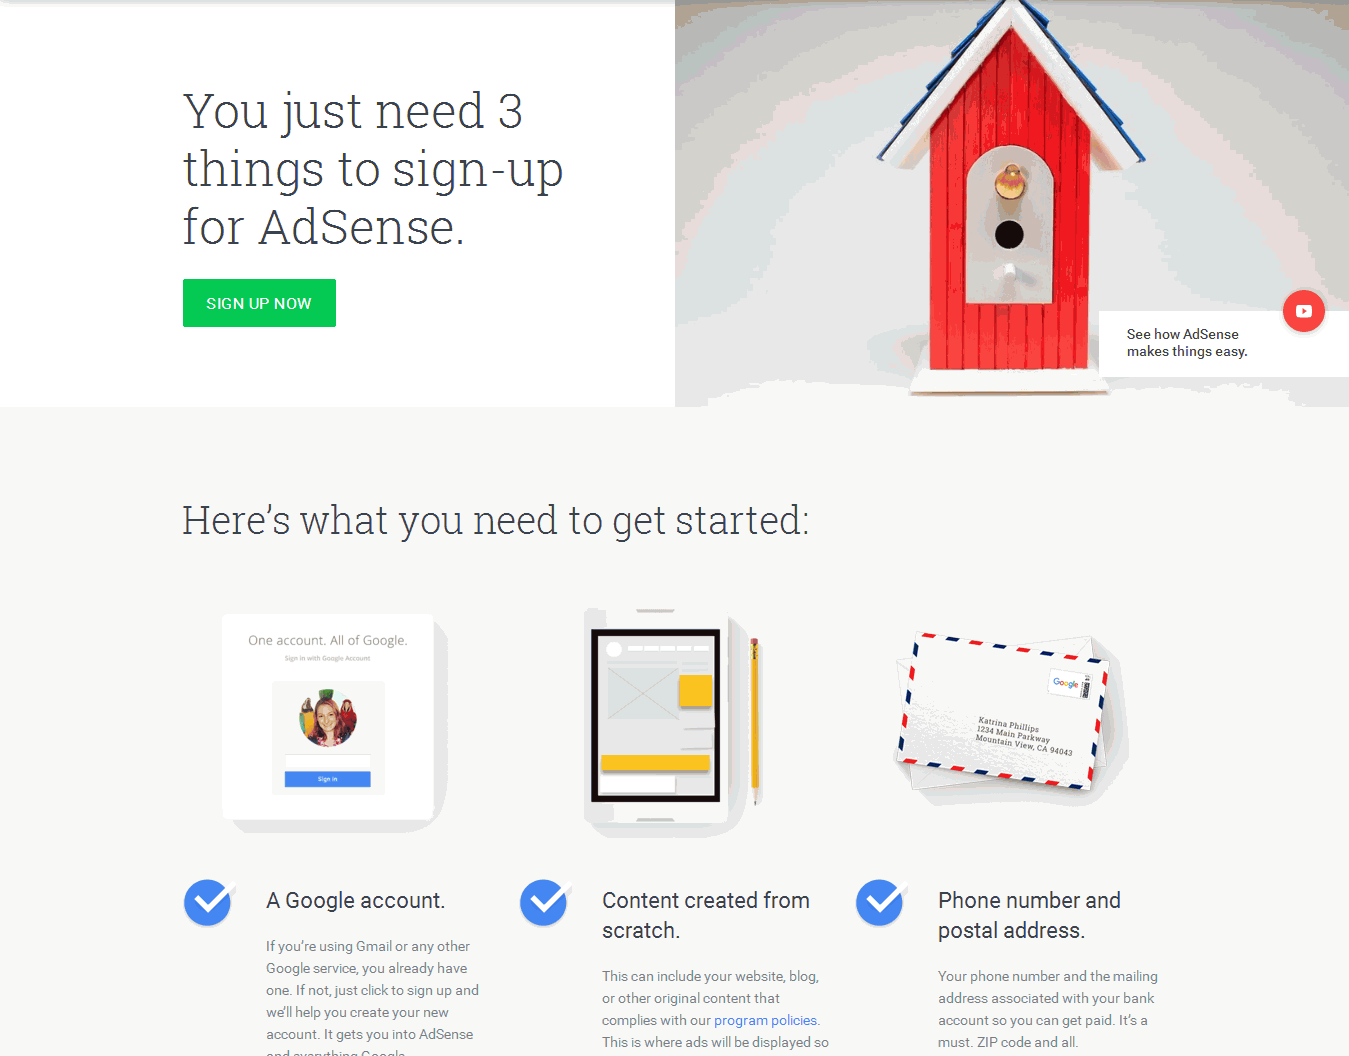 Approved Adsense Account In 3 Days With 12 Posts [Case